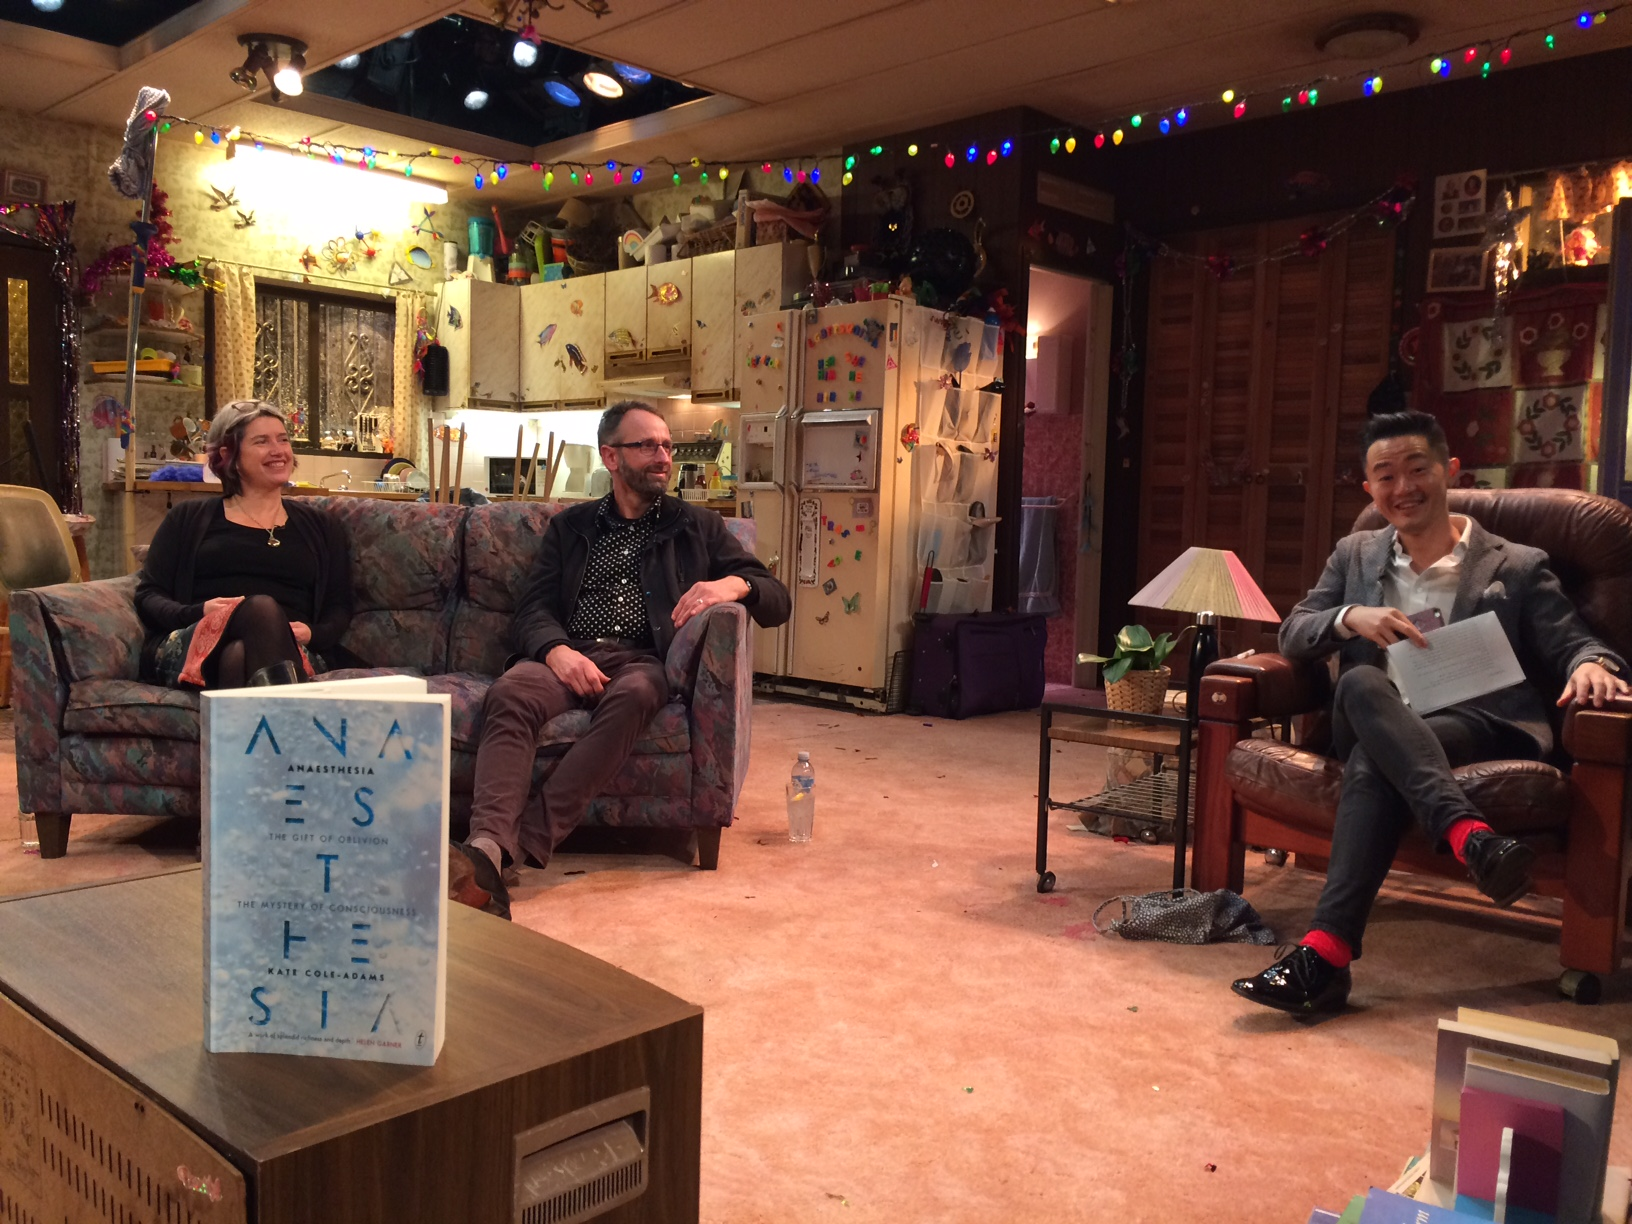 Centre stage - At Sydney's Belvoir Street Theatre, talking anaesthesia with Tim McCulloch and chair Benjamin Law.